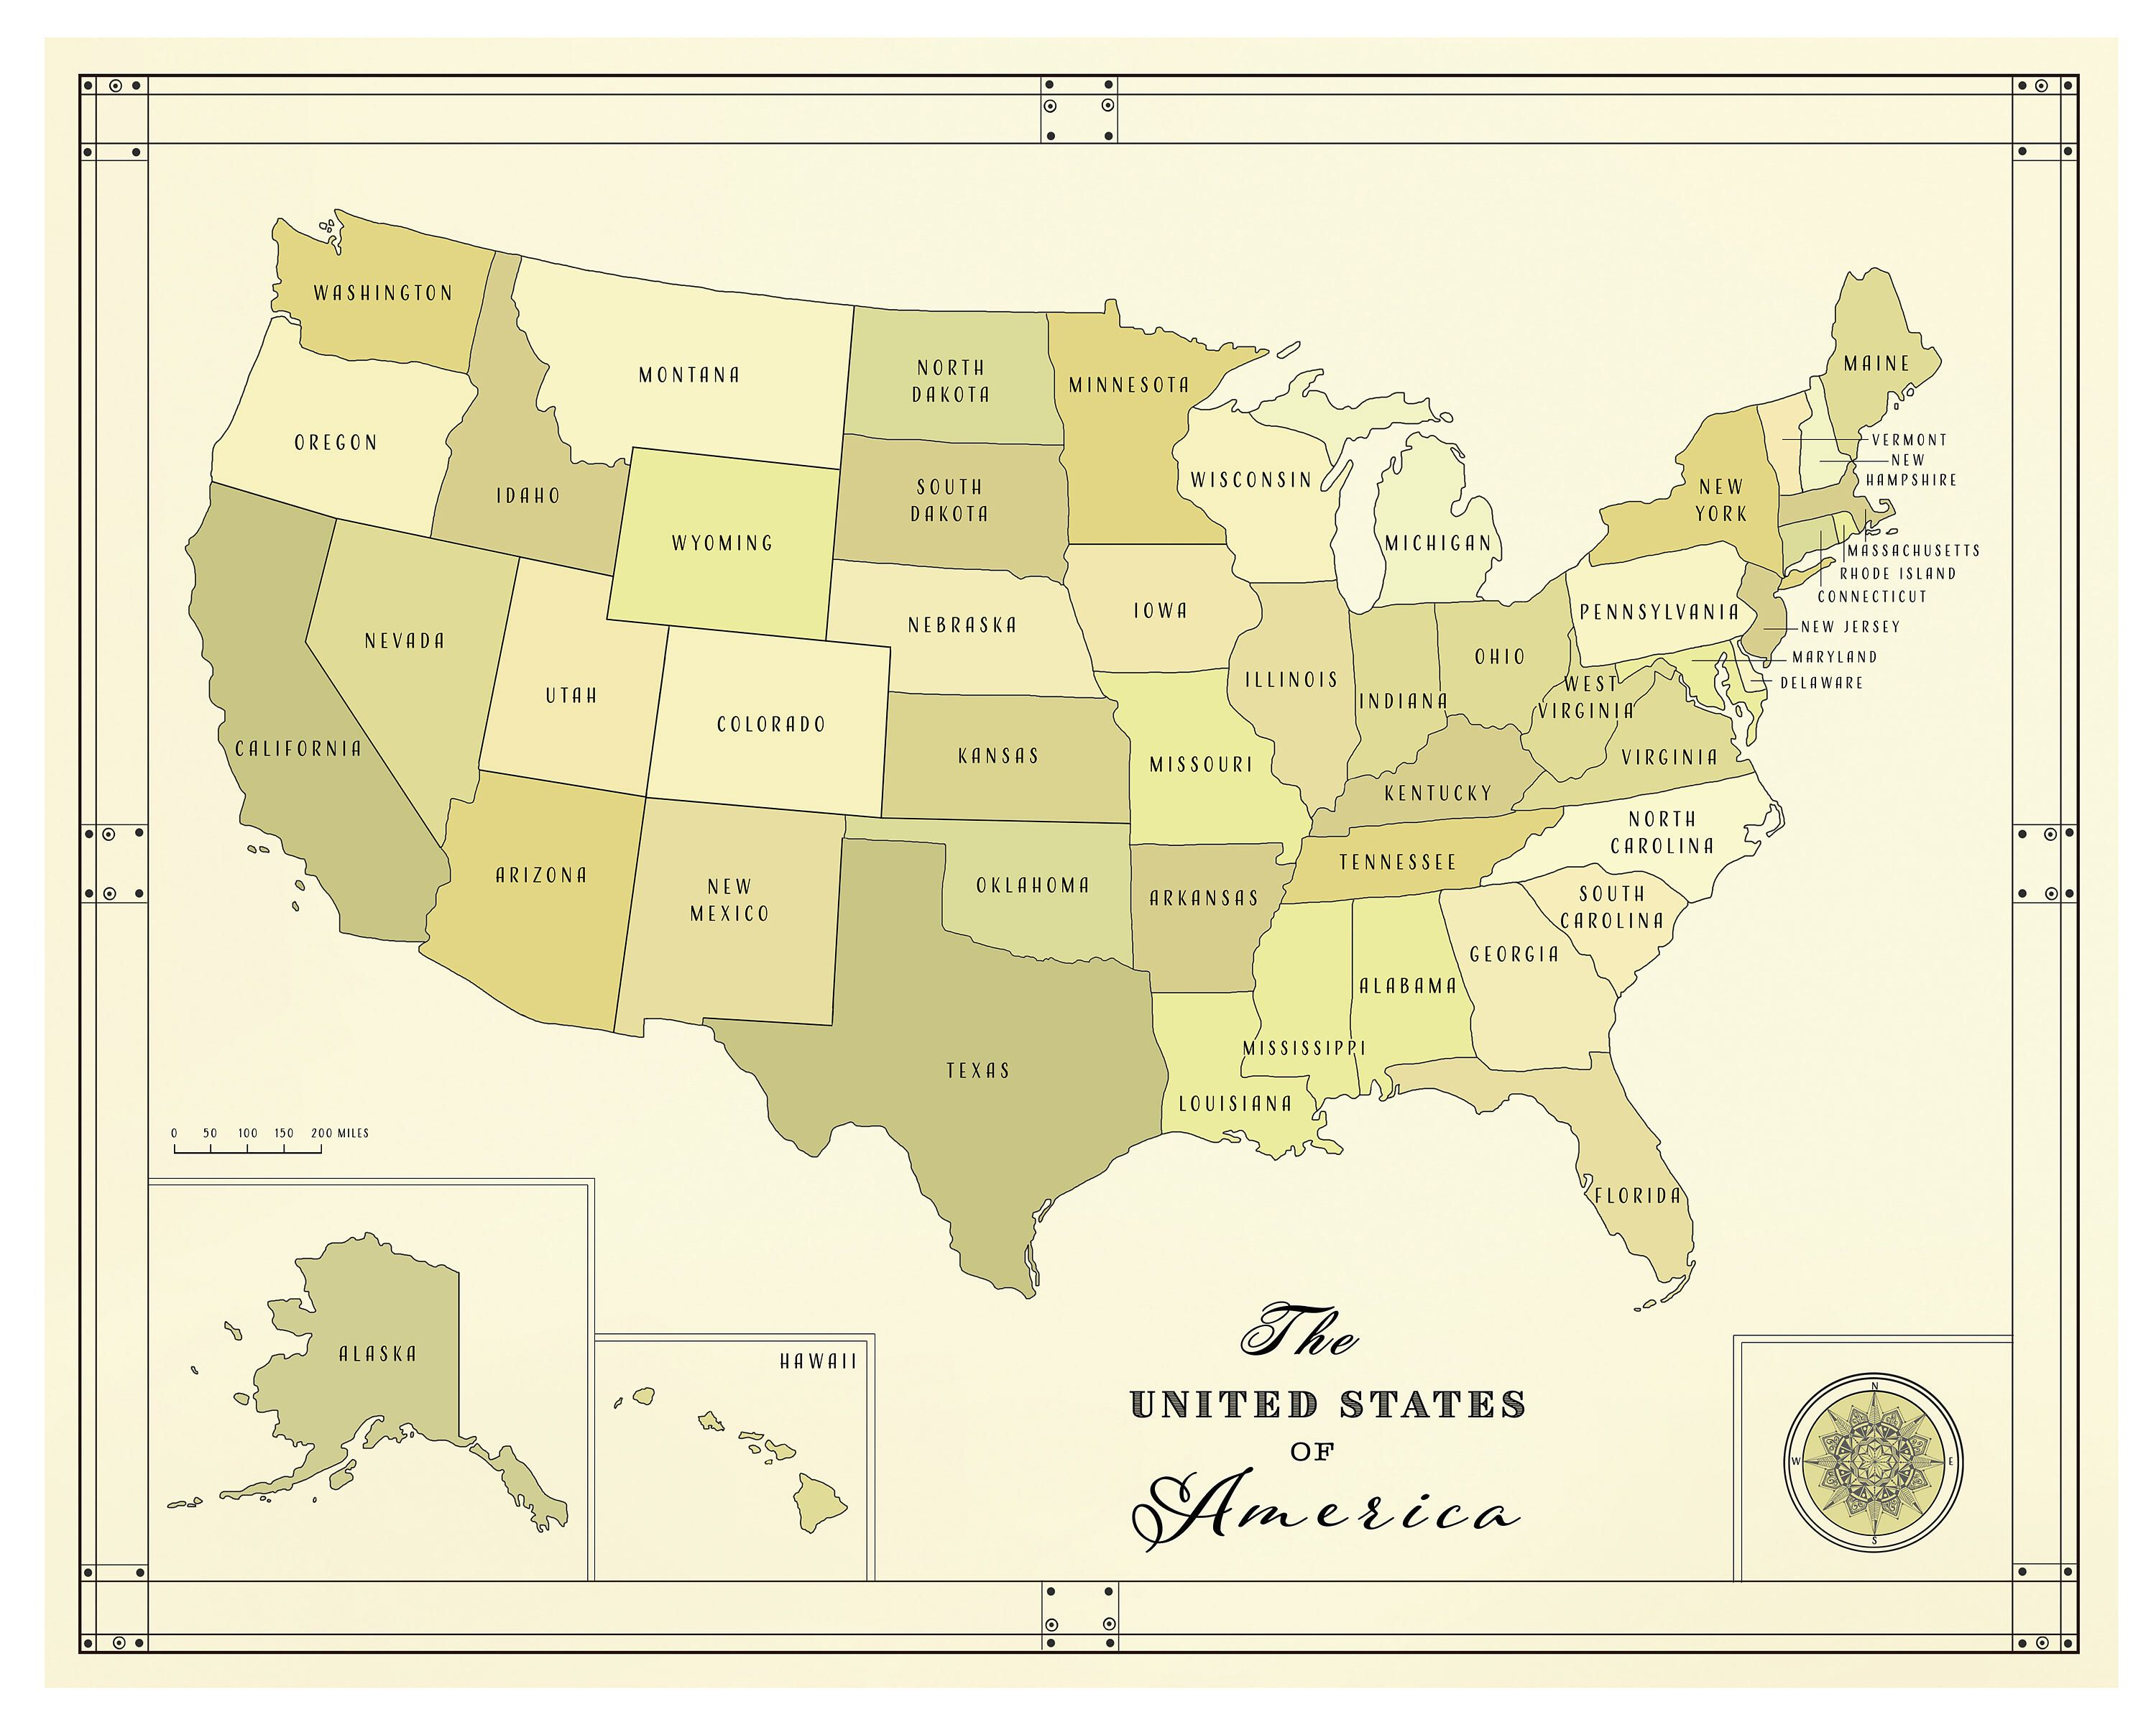 United States of America [vintage inspired] State Boundaries ...